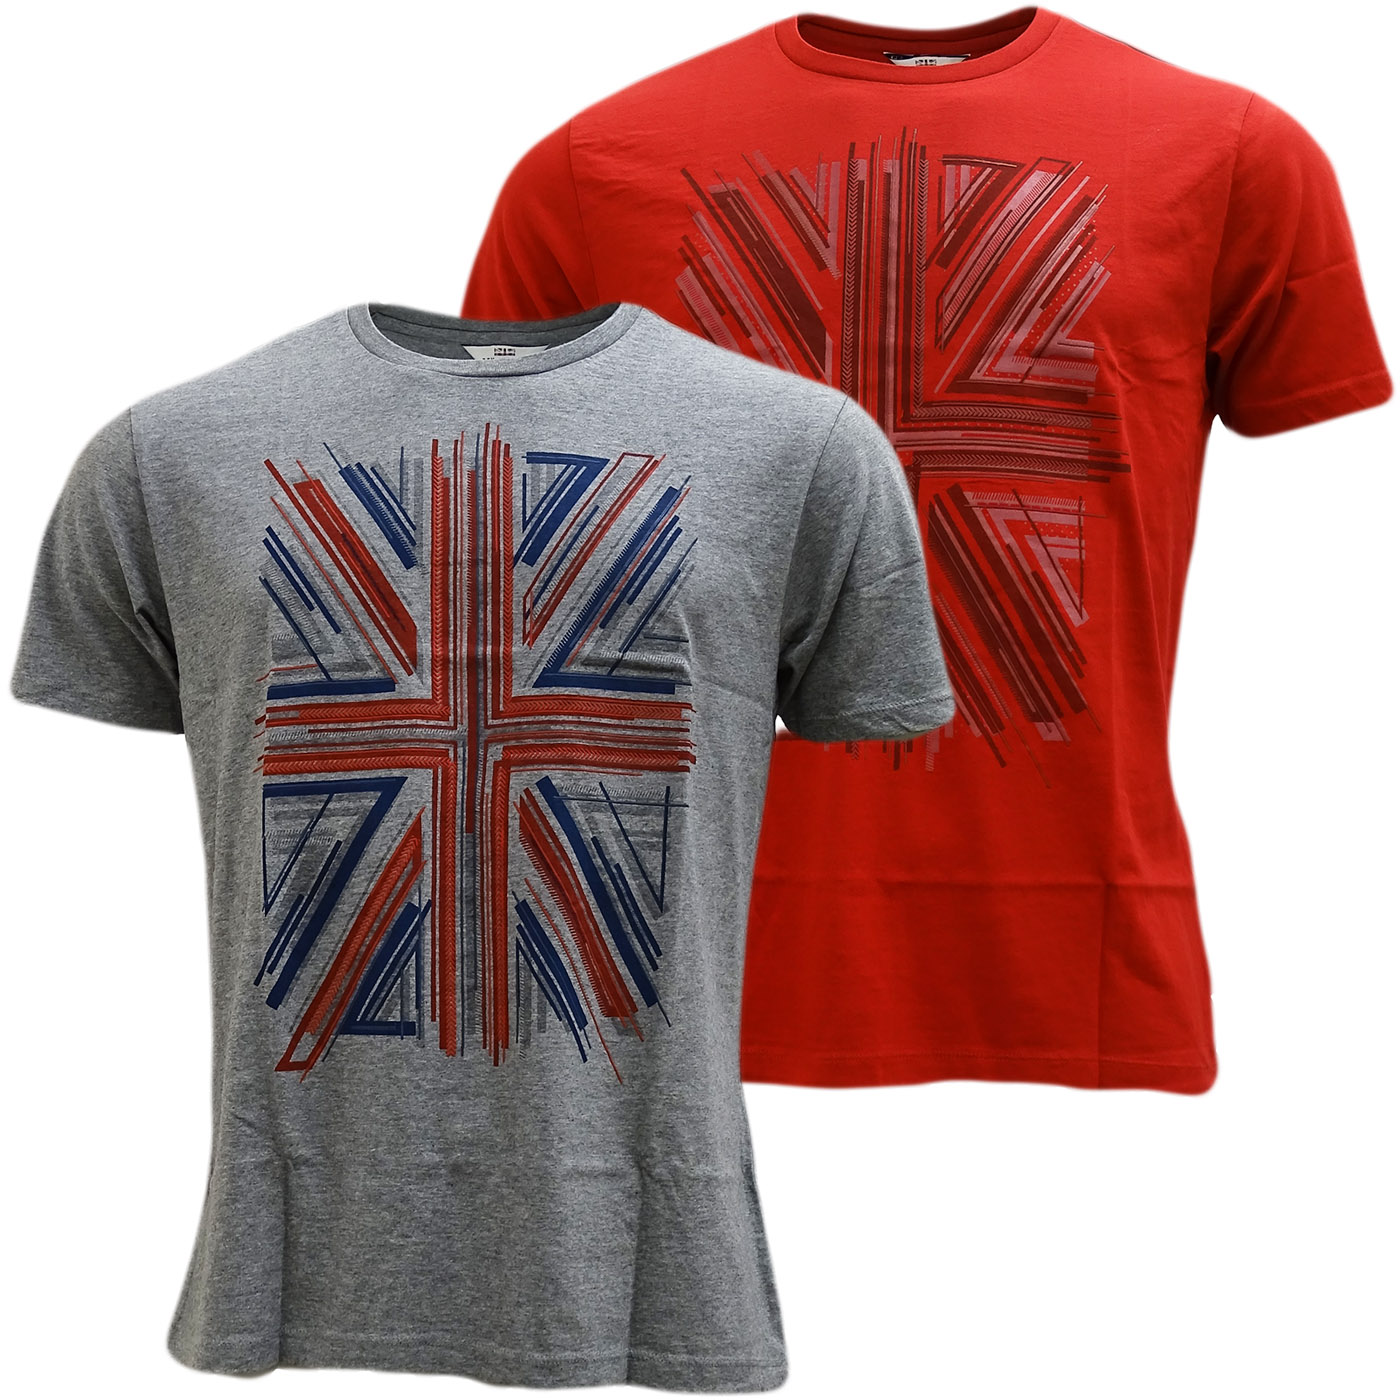 Ben Sherman Union Jack T-Shirt - Mb13441